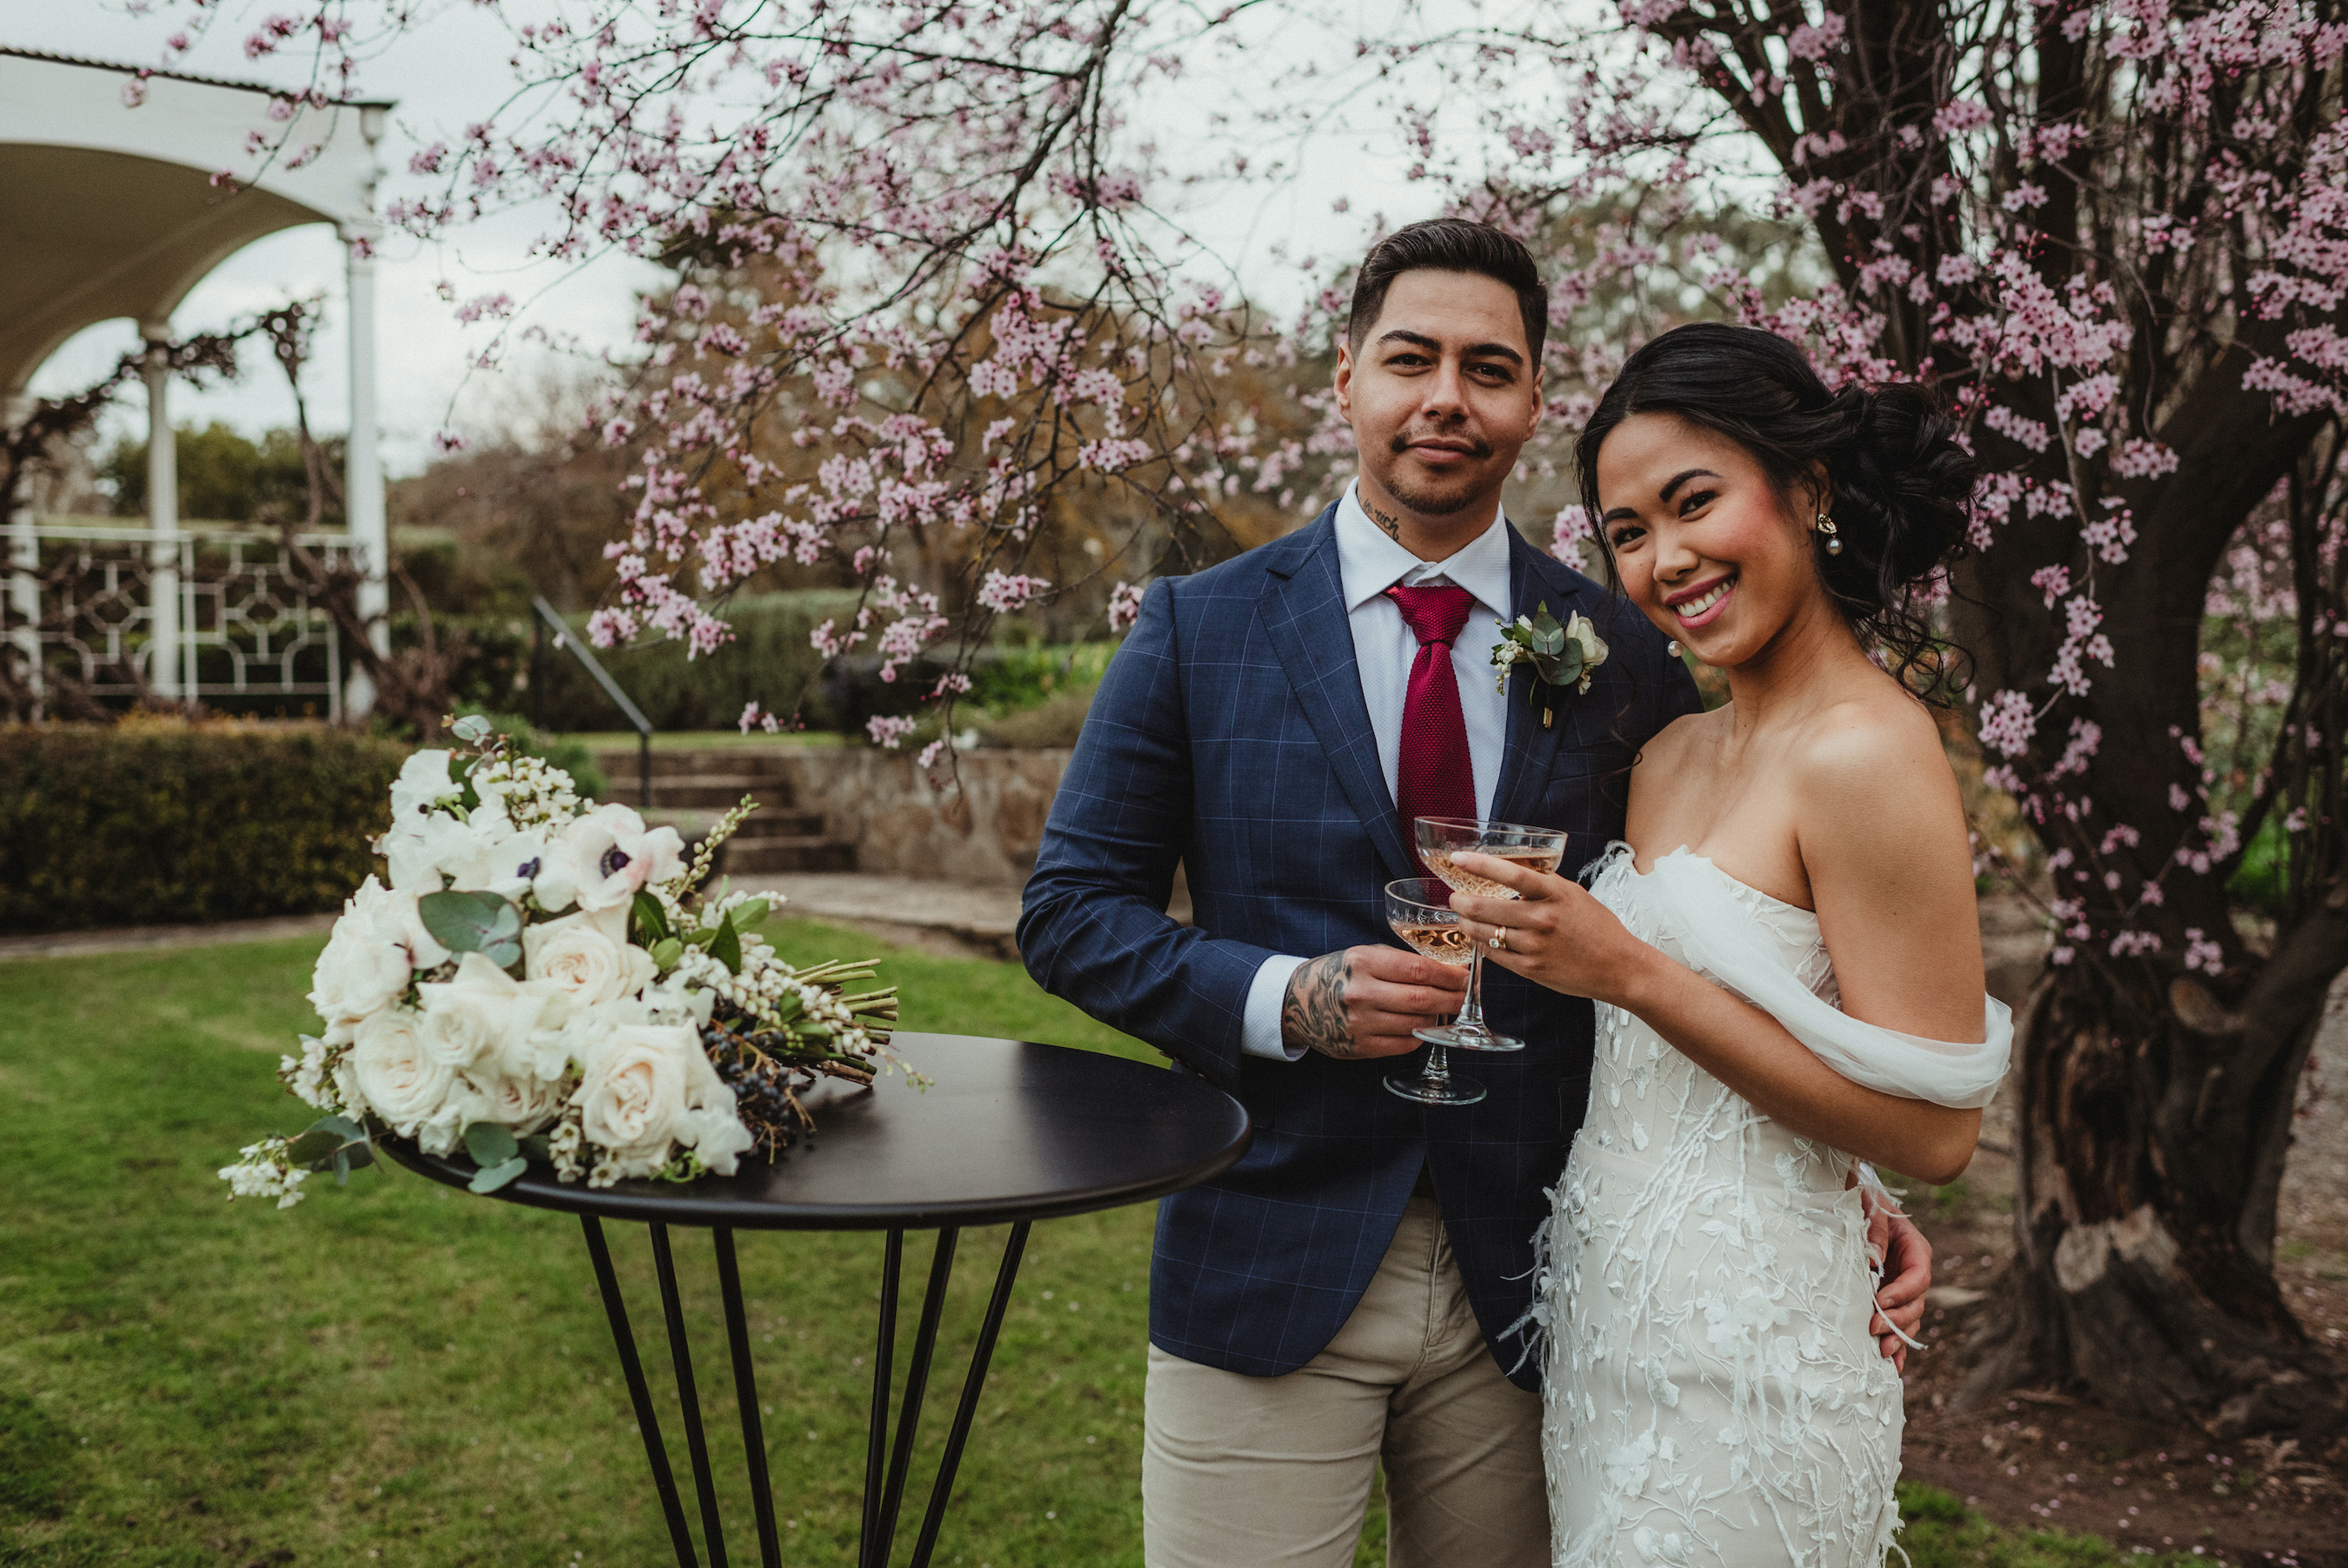 Glen Lea Homestead Styled Shoot, Historic Dry Hire Wedding Venue in the Adelaide Hills. A rustic farm setting now available for ceremonies and receptions.